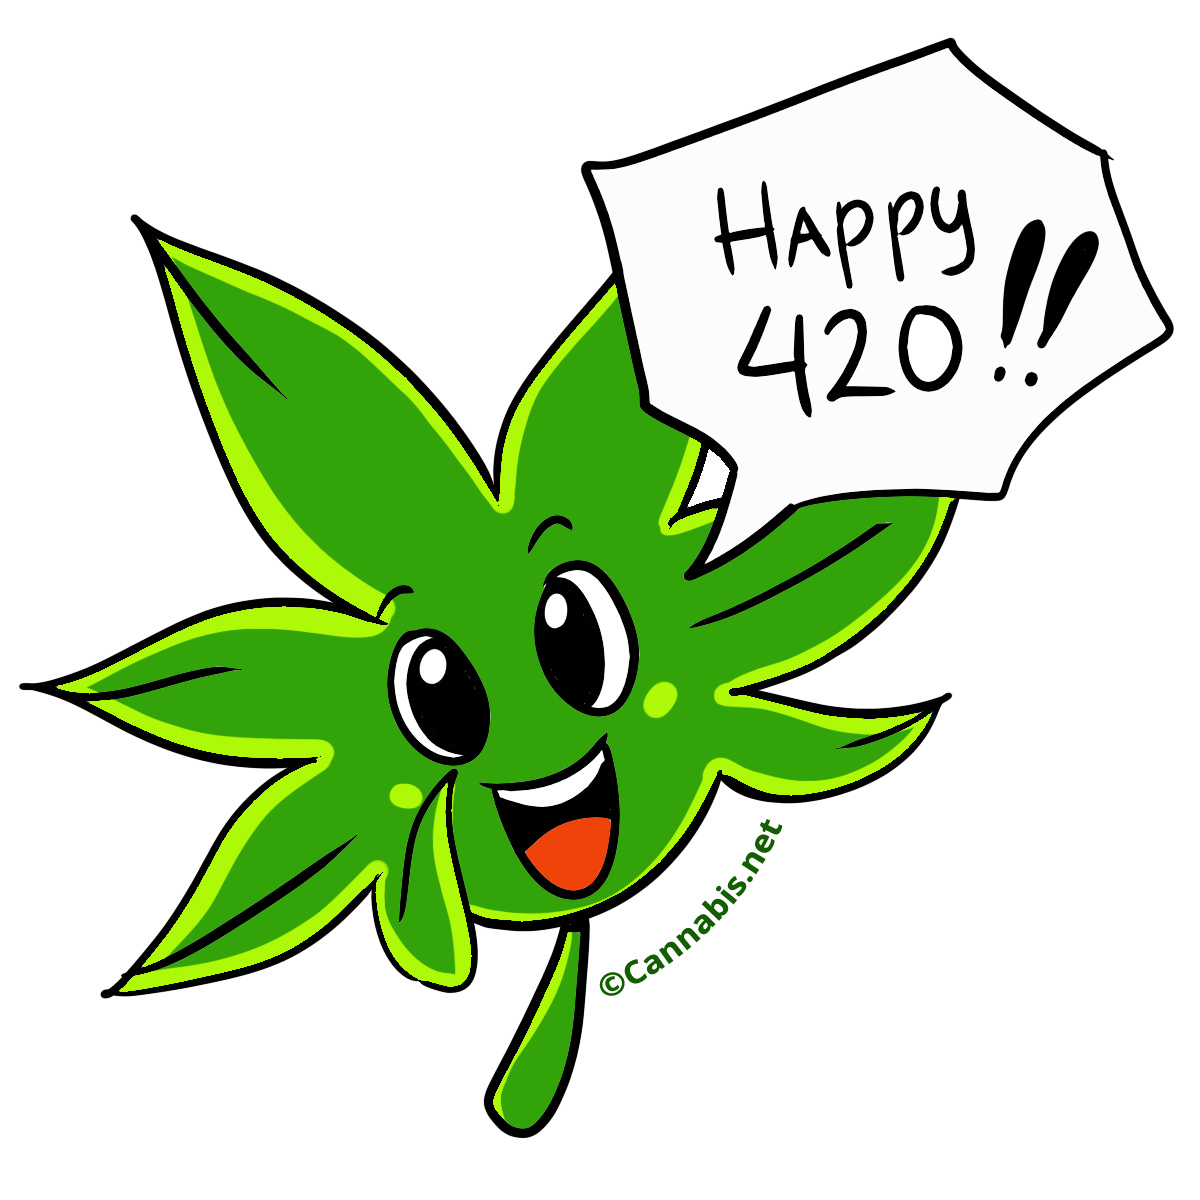 420 dating sites So i recently added that i am 420 friendly, and i do smoke i added that because it's the truth, and they are going to find out soon anyway i know a lot of ladies on here wont even give me a look b.